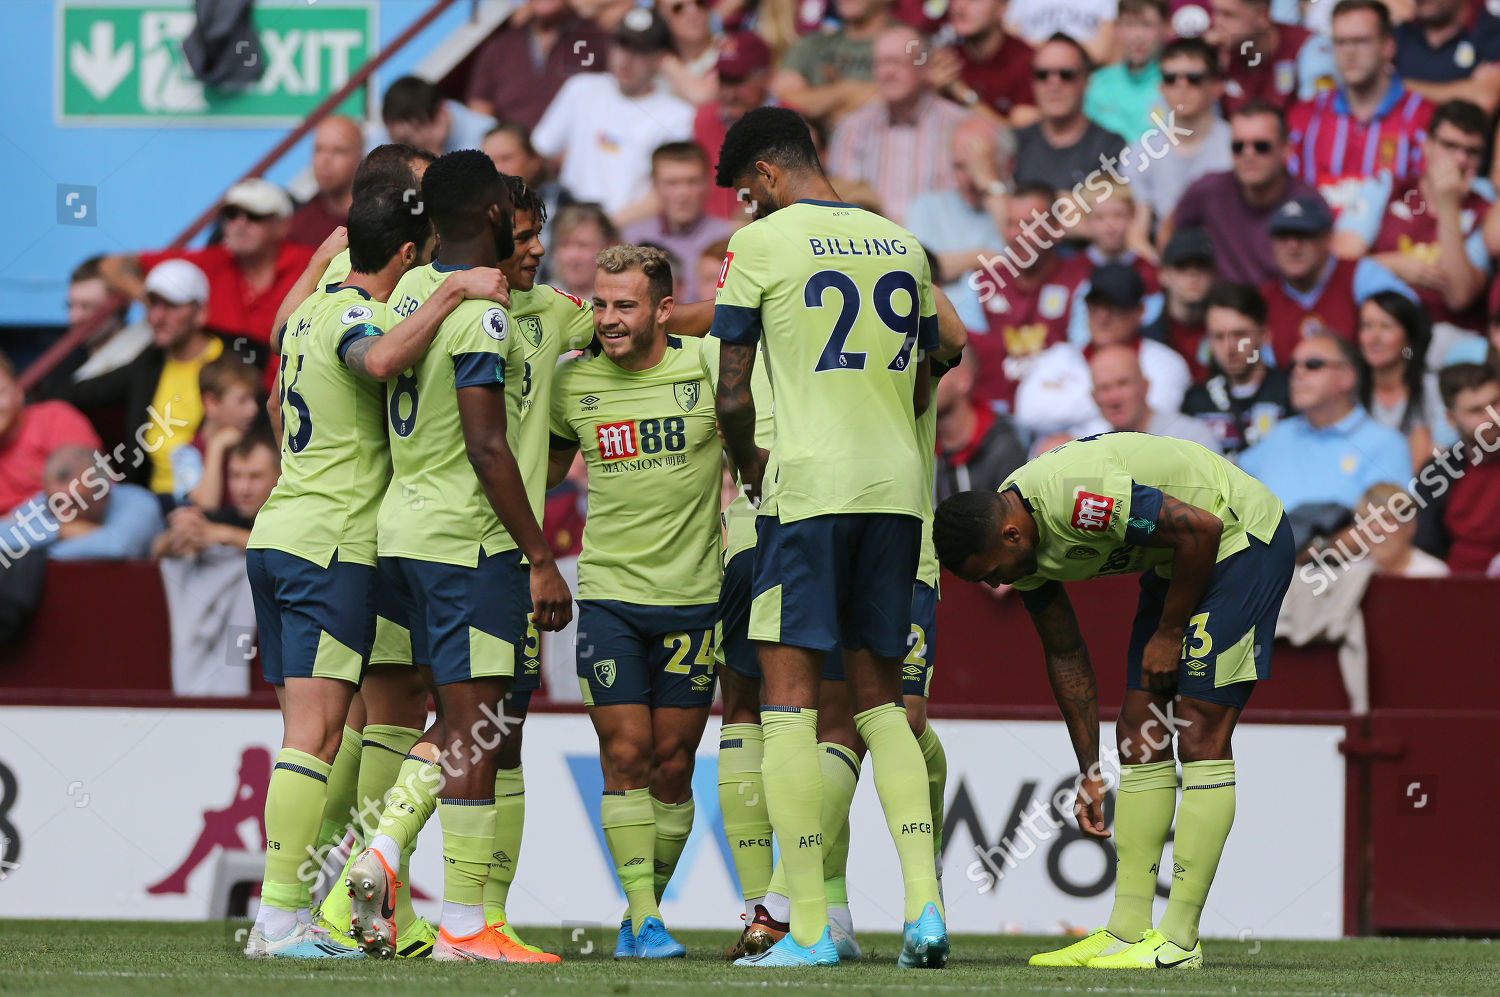 Bournemouth celebrate scoring their second goal during